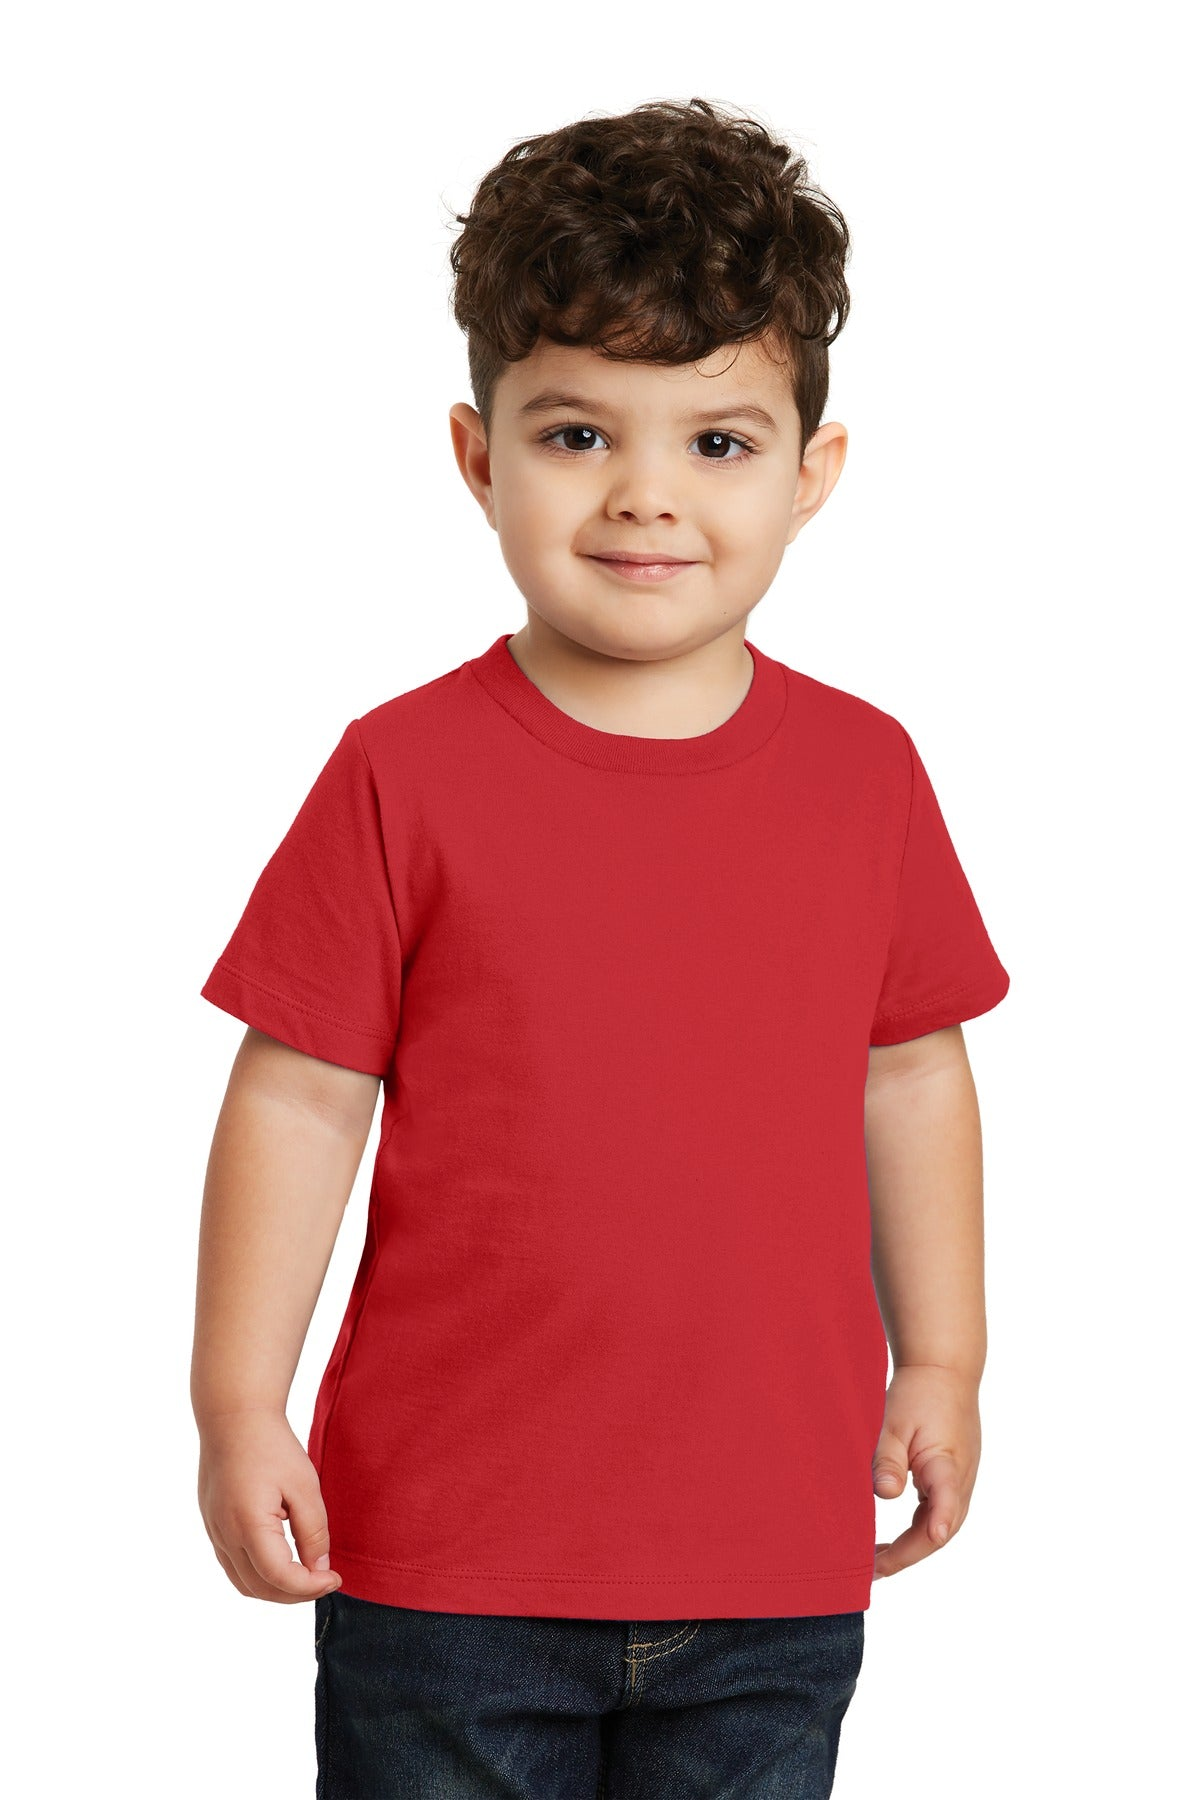 Bright Red Port & Company Toddler Fan Favorite T-Shirt